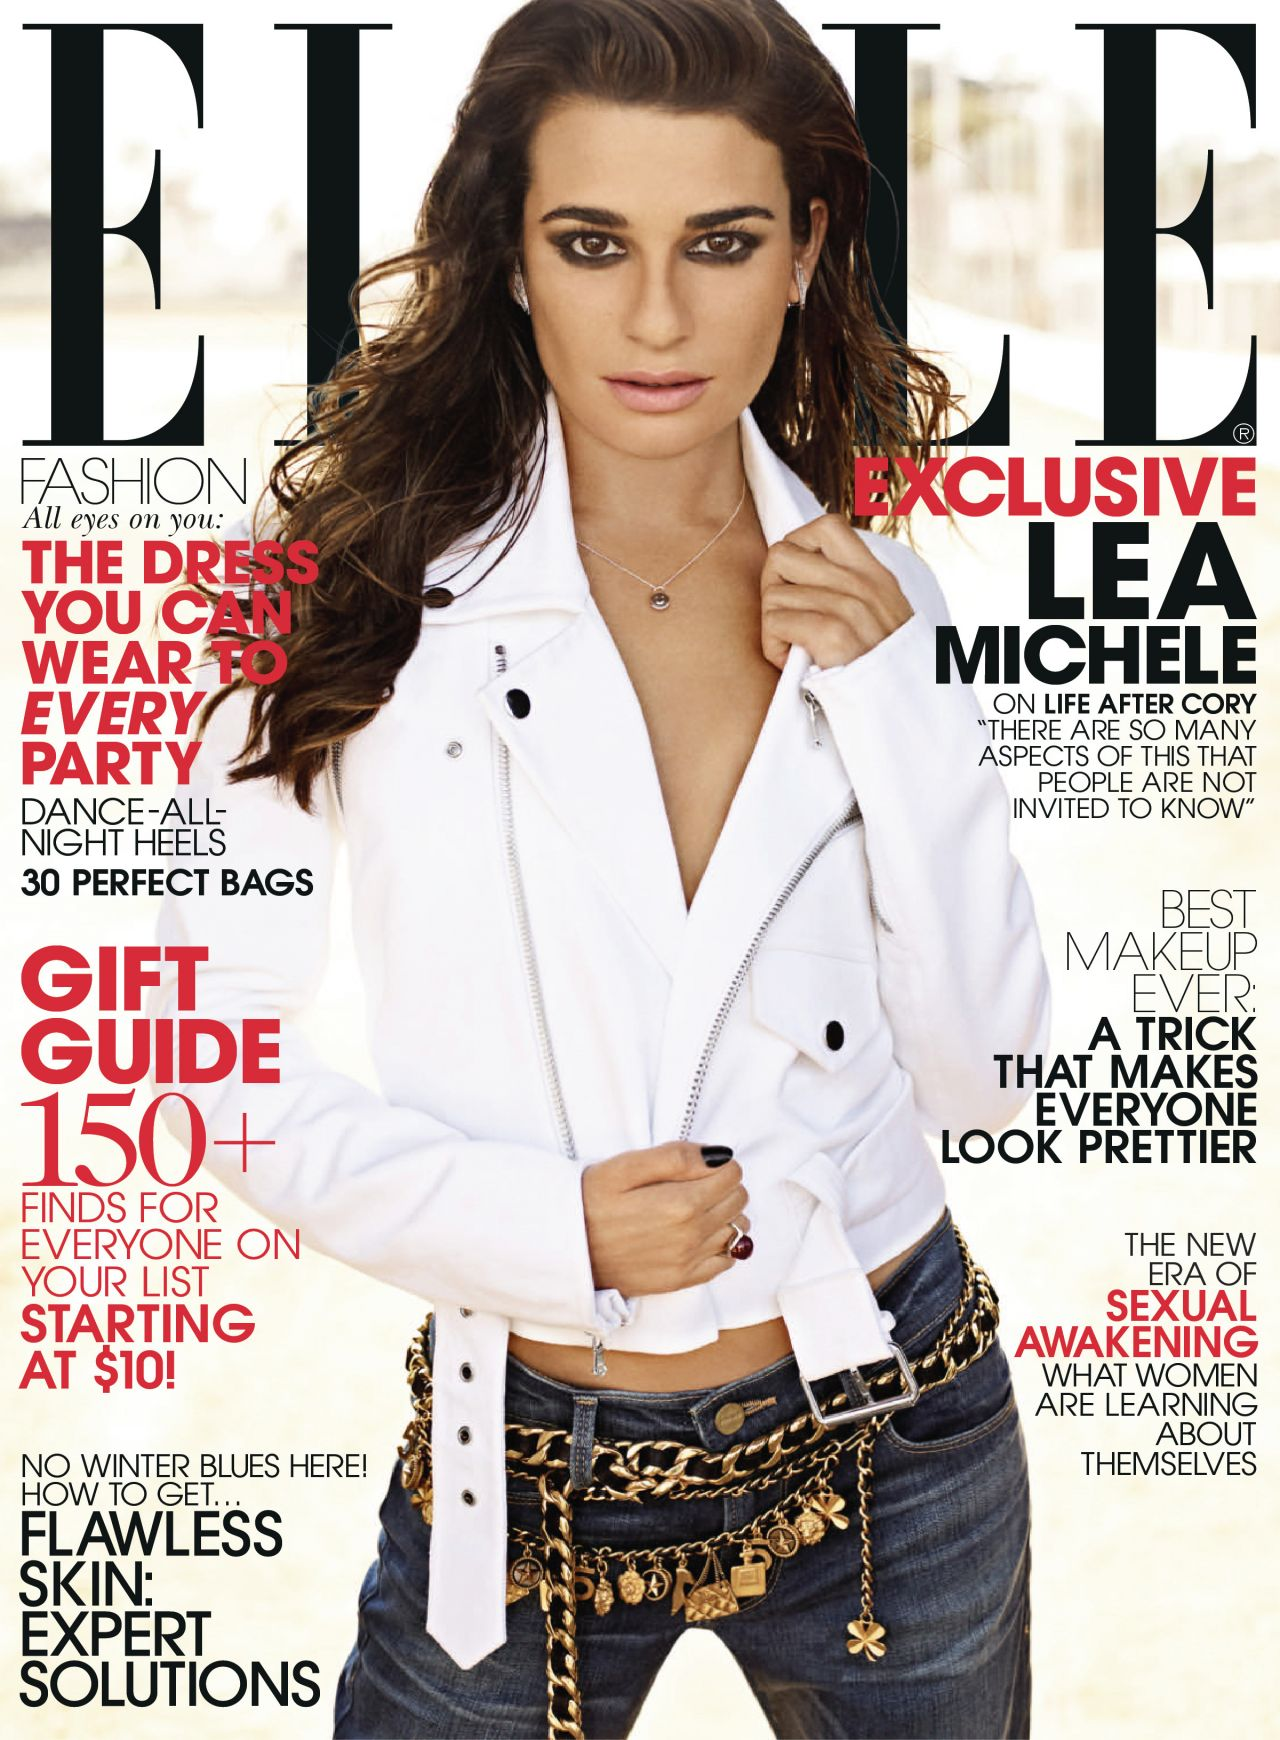 lea-michele-elle-magazine-december-2013-issue_1.jpg